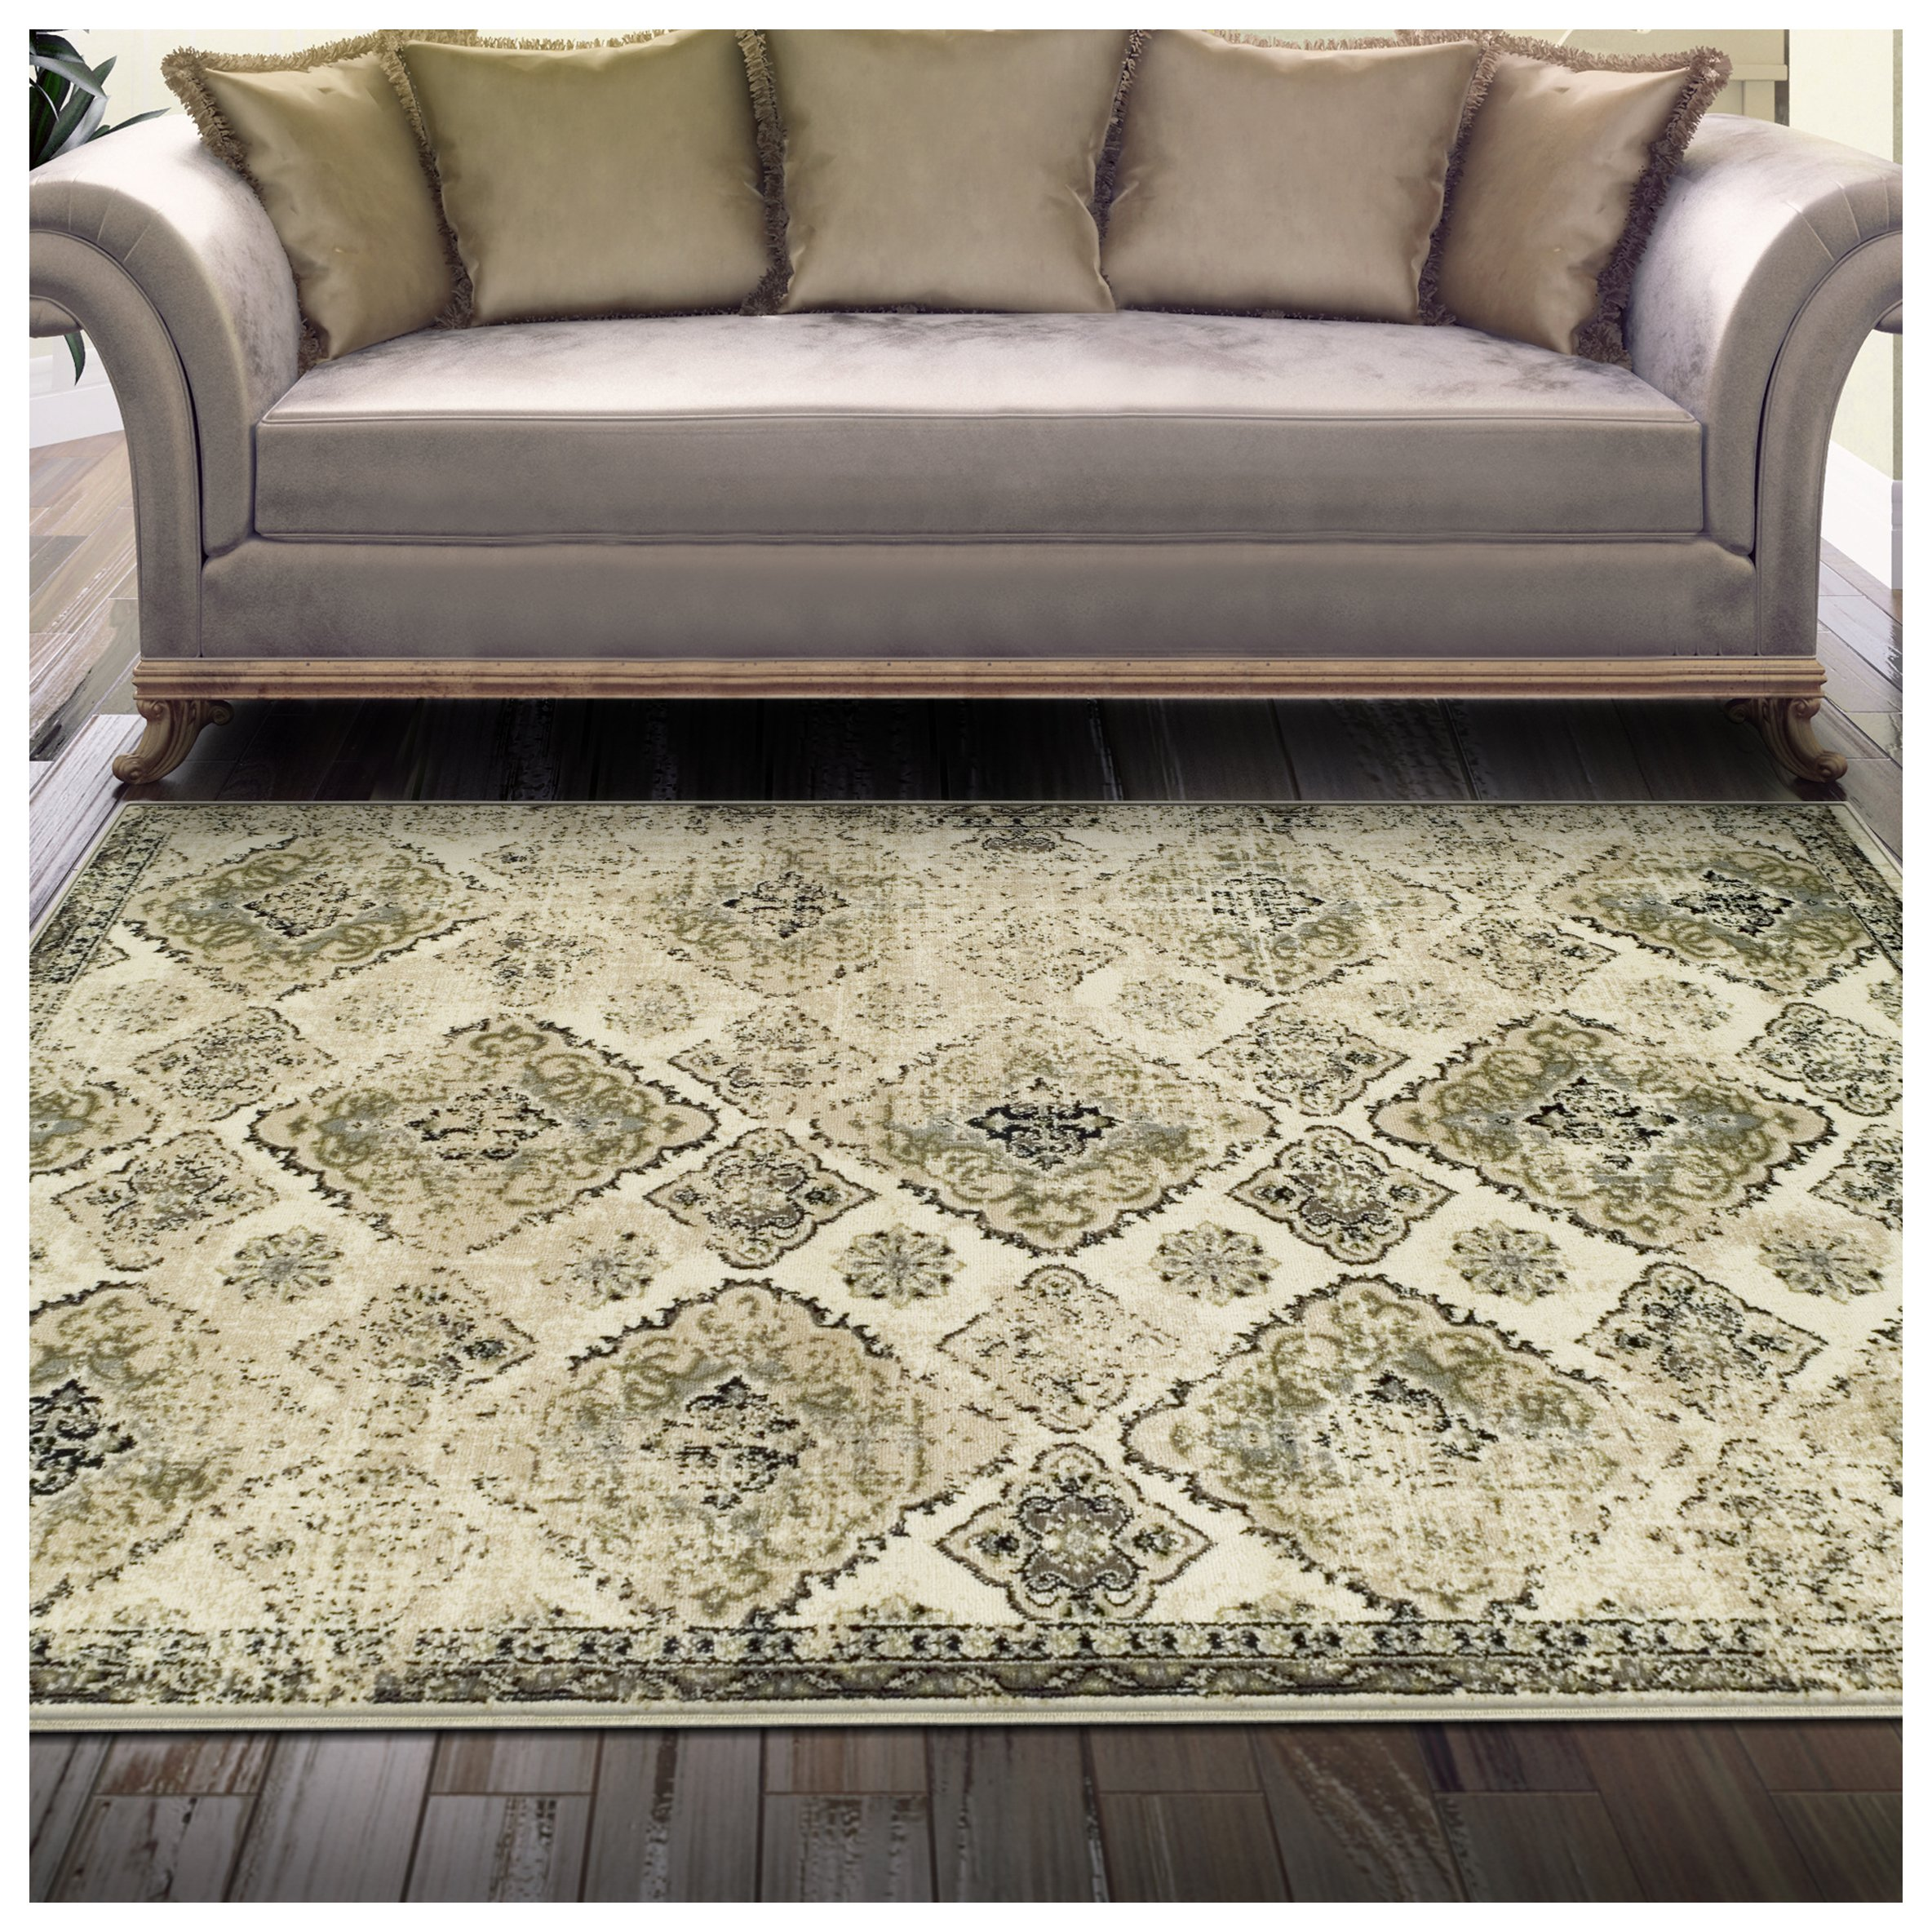 Superior Mayfair Collection Area Rug, 8mm Pile Height with Jute Backing, Vintage Distressed Medallion Pattern, Fashionable and Affordable Woven Rugs - 5' x 8' Rug, Ivory by Superior